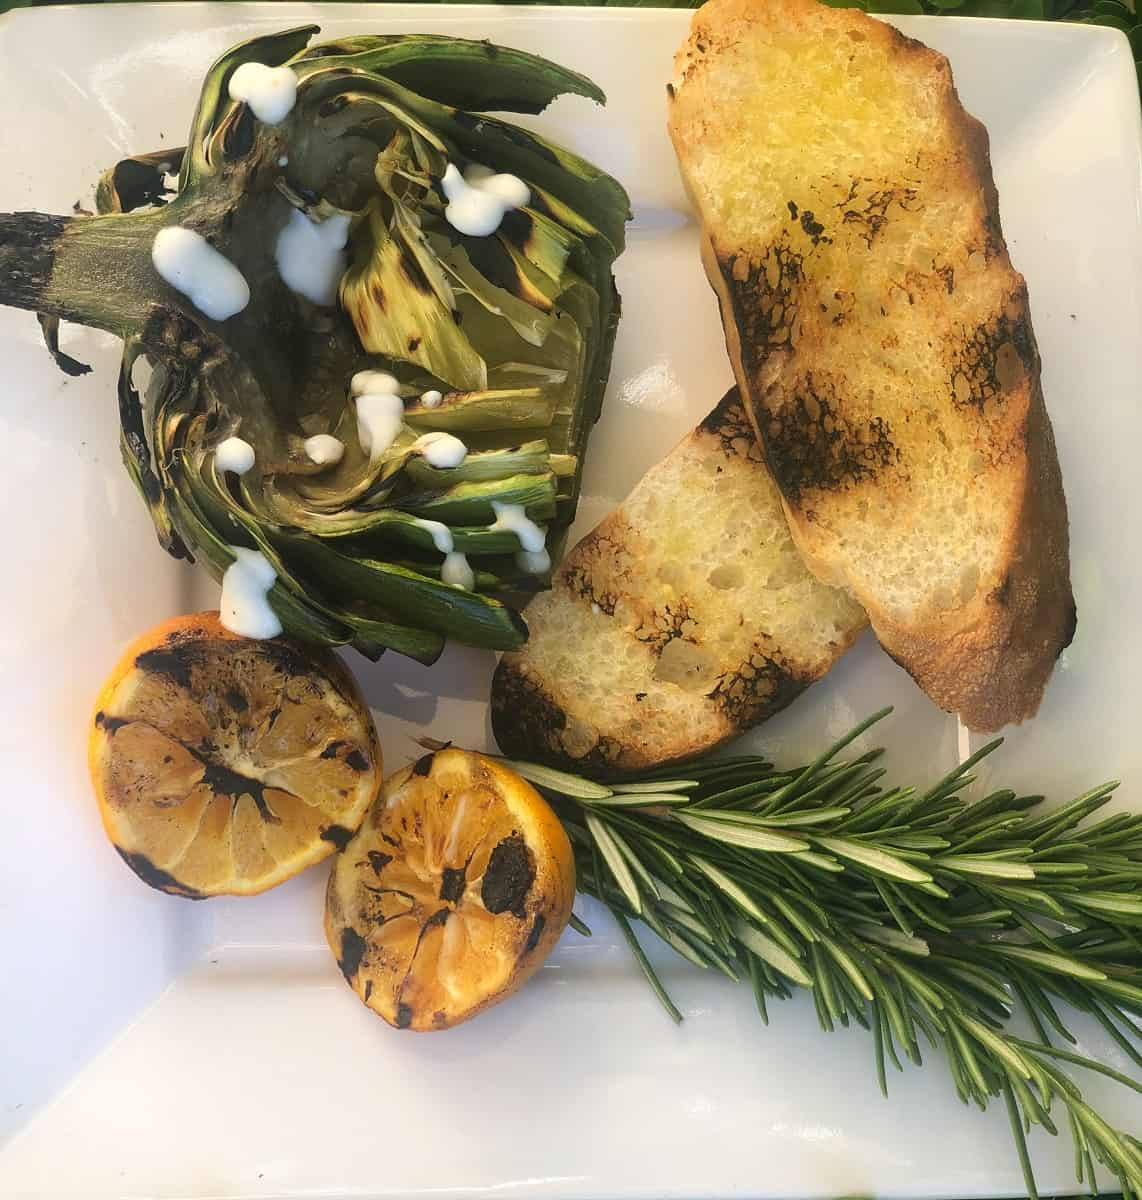 grilled artichoks and grilled bread